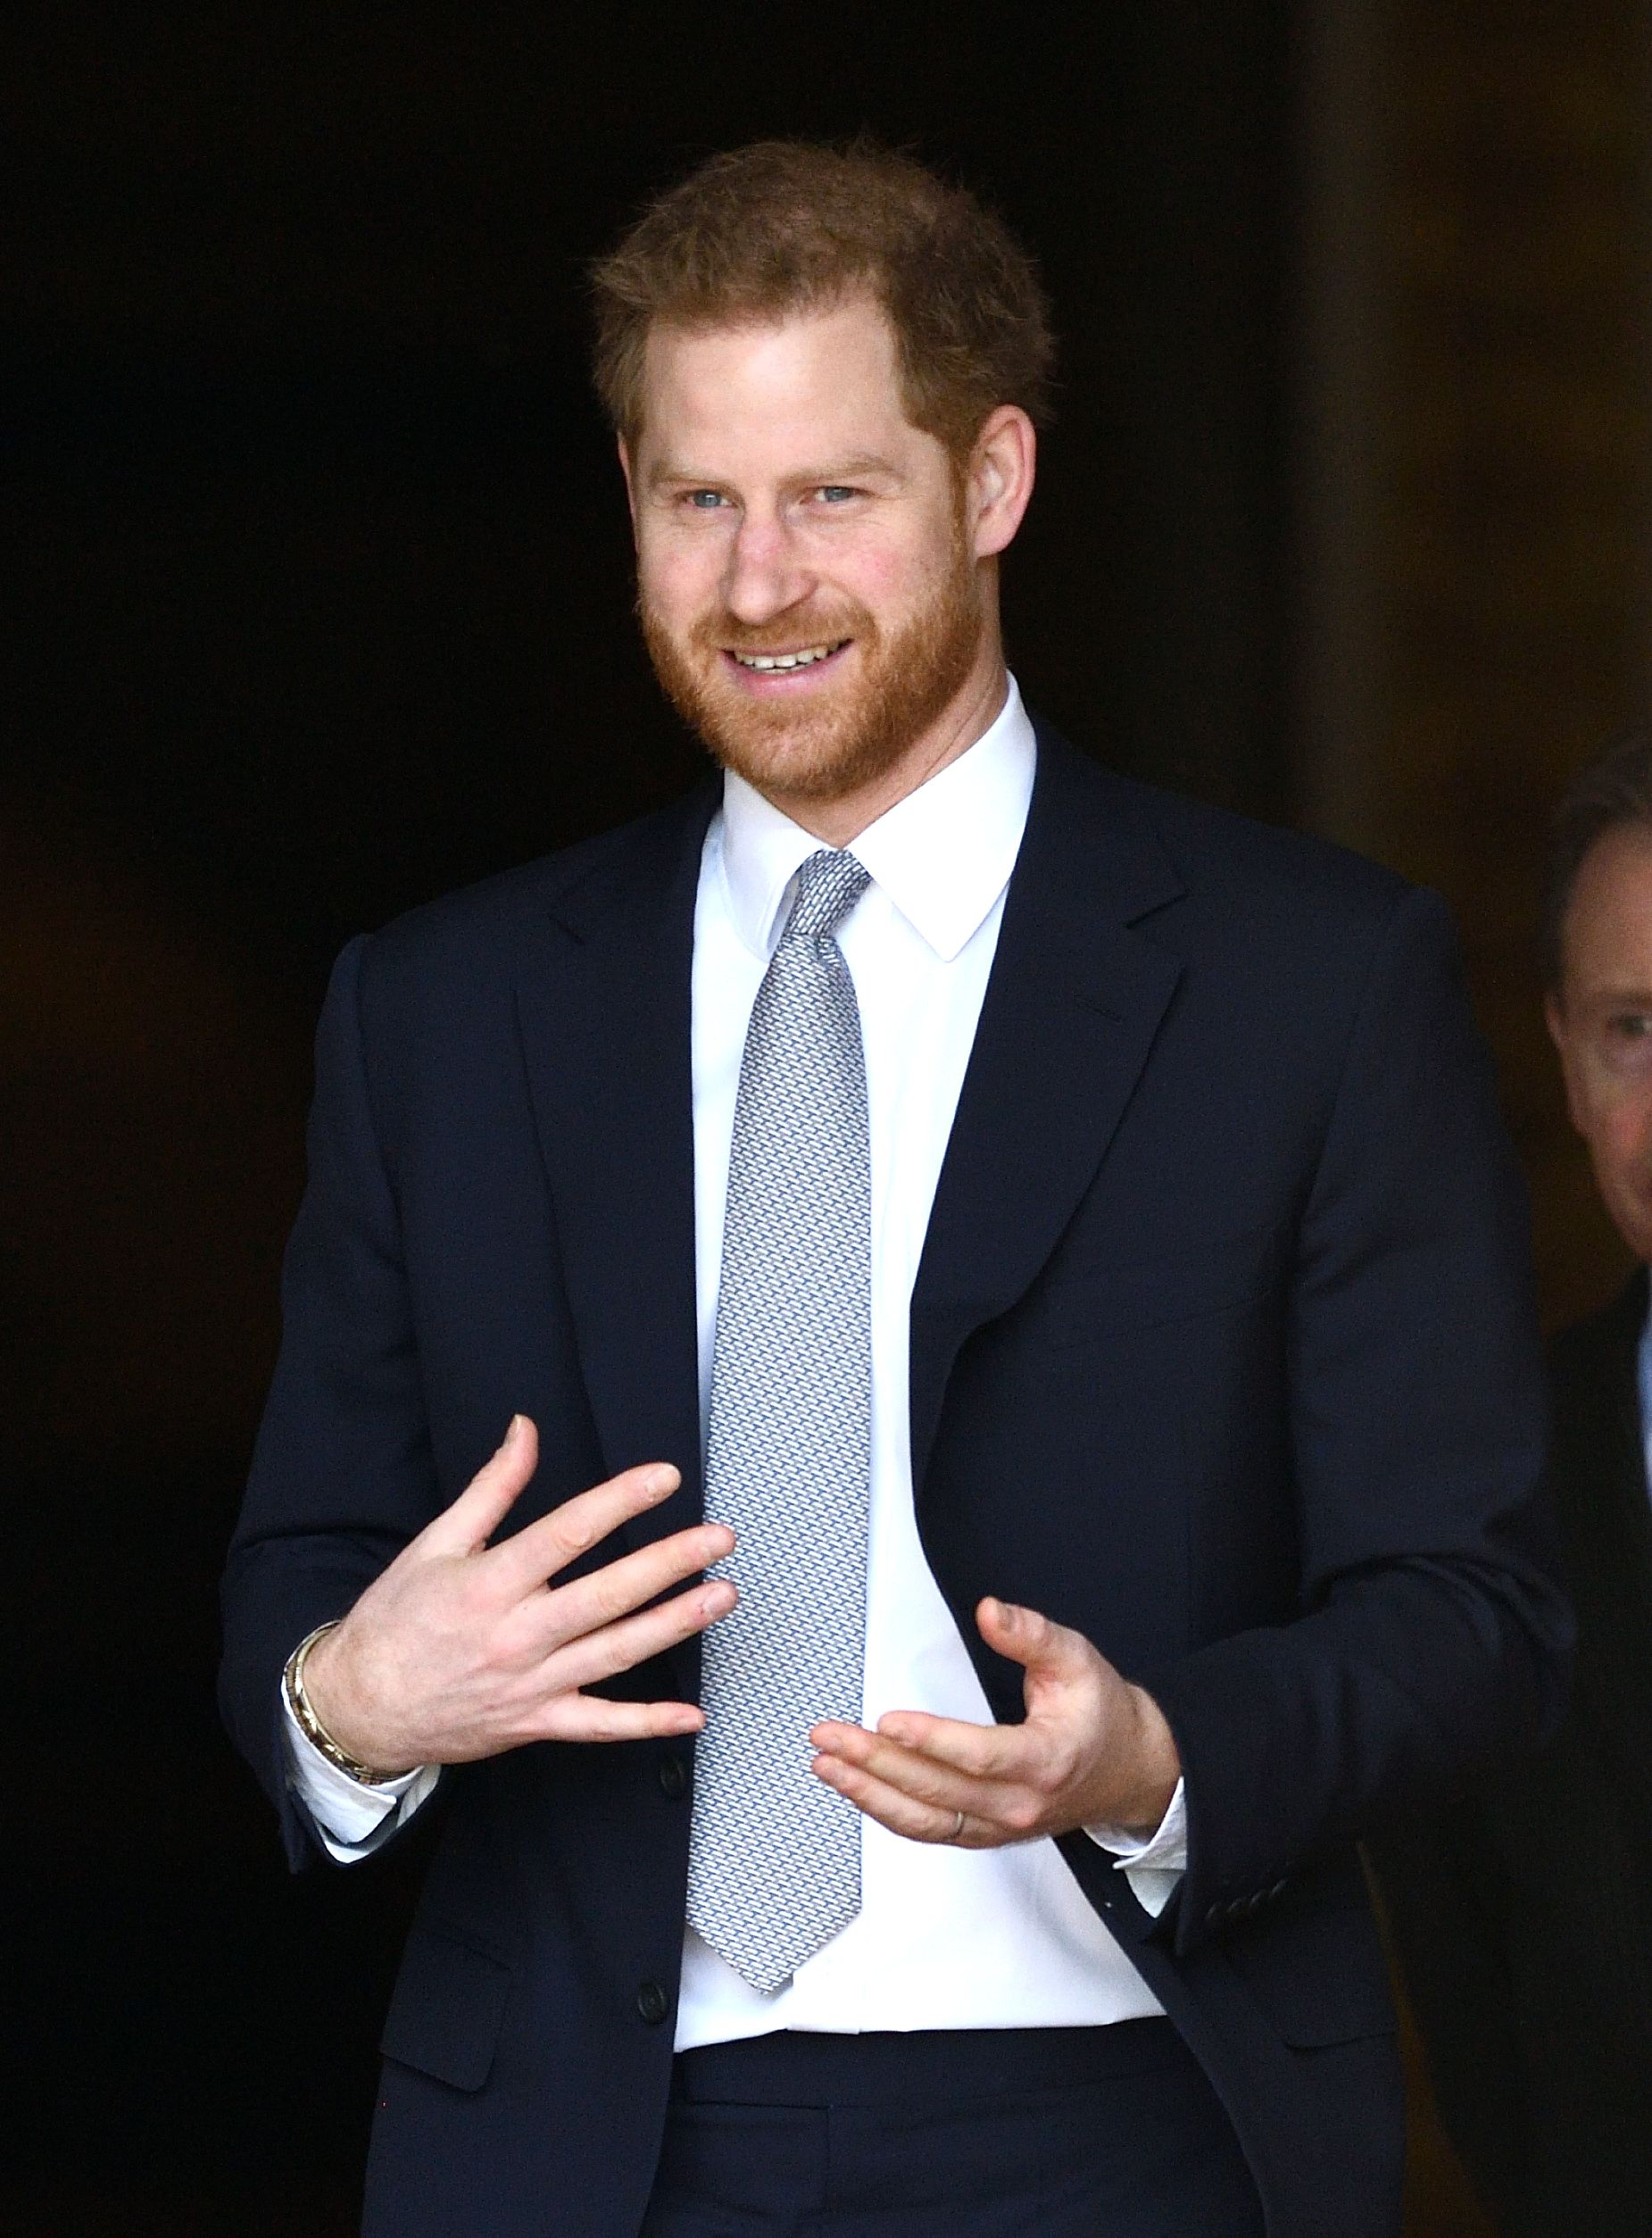 Prince Harry makes first public appearance since announcing plans to 'step back'